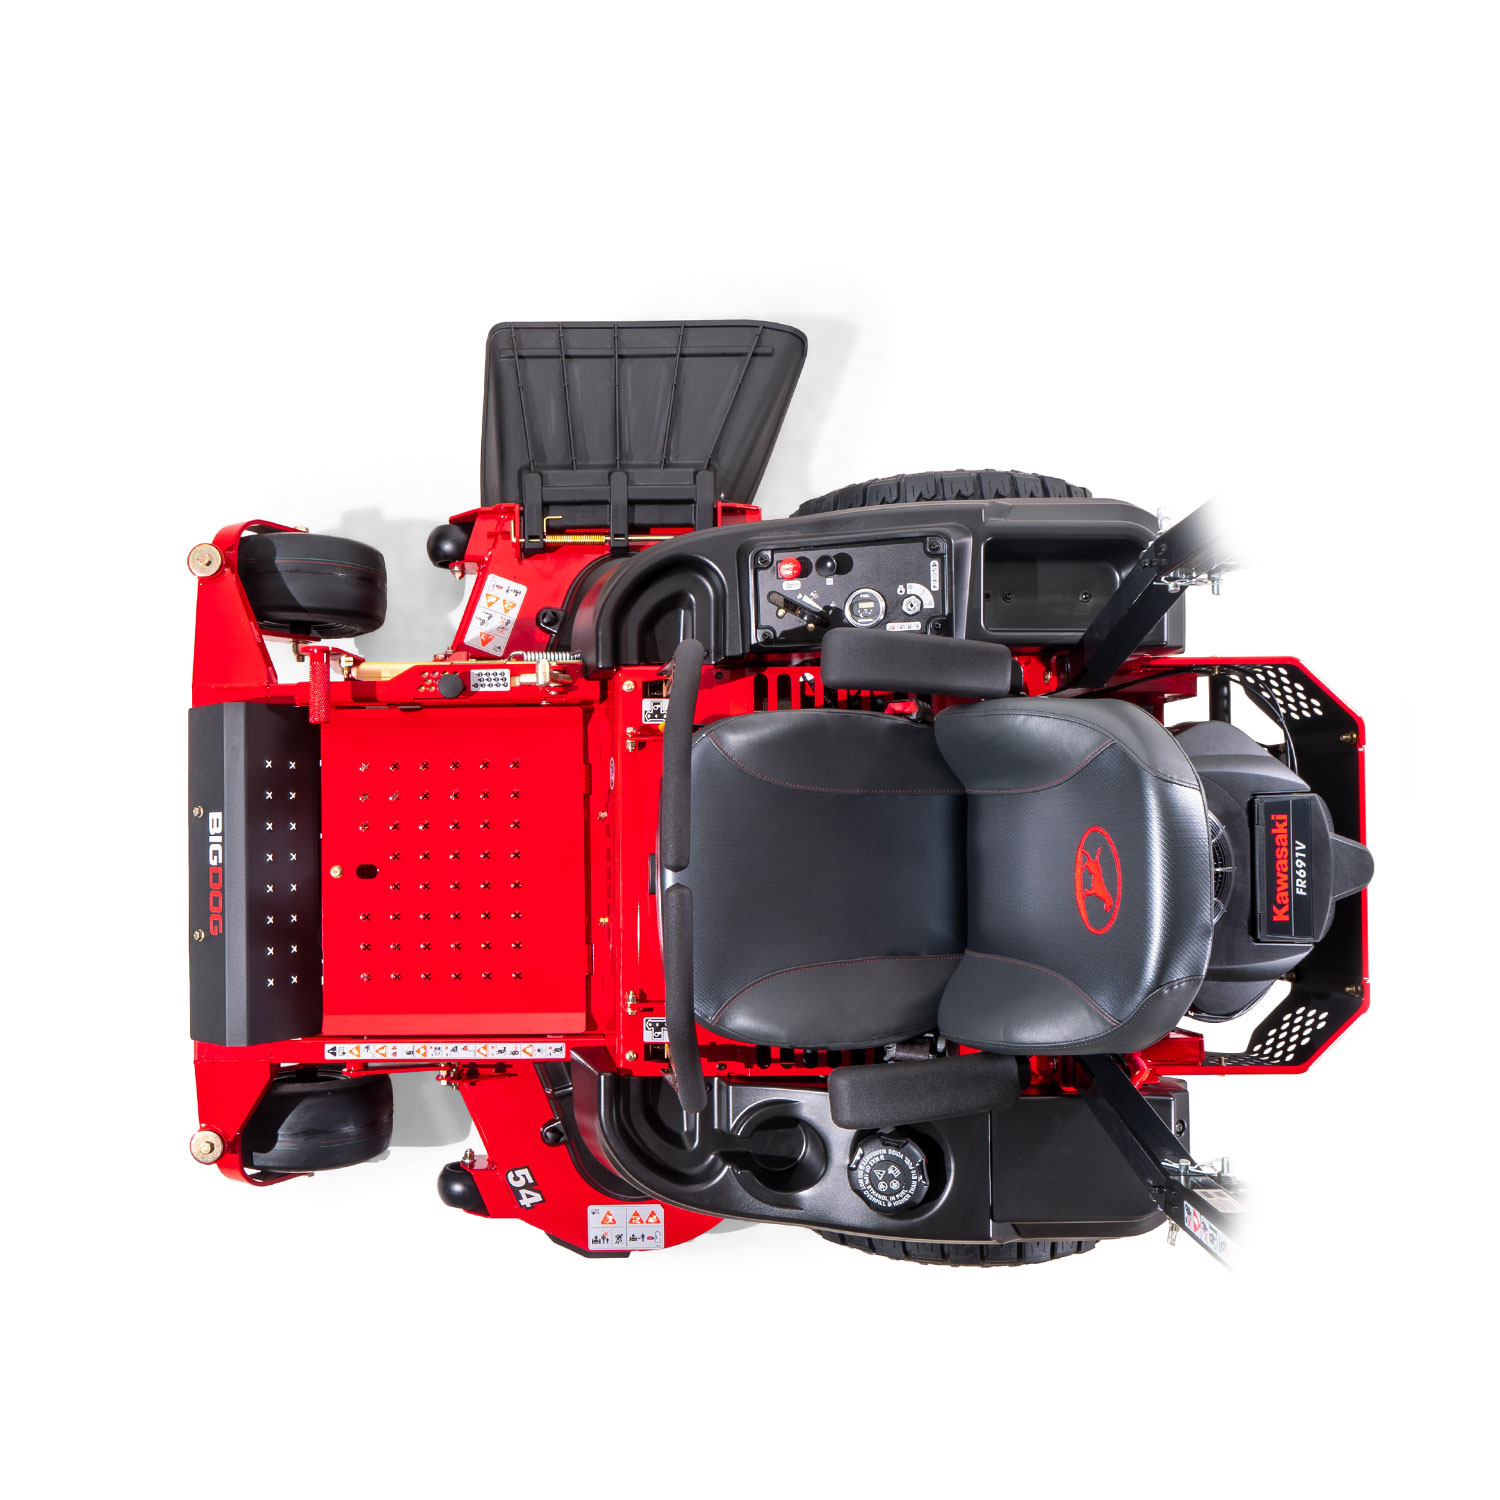 Image of a red zero-turn mower from above